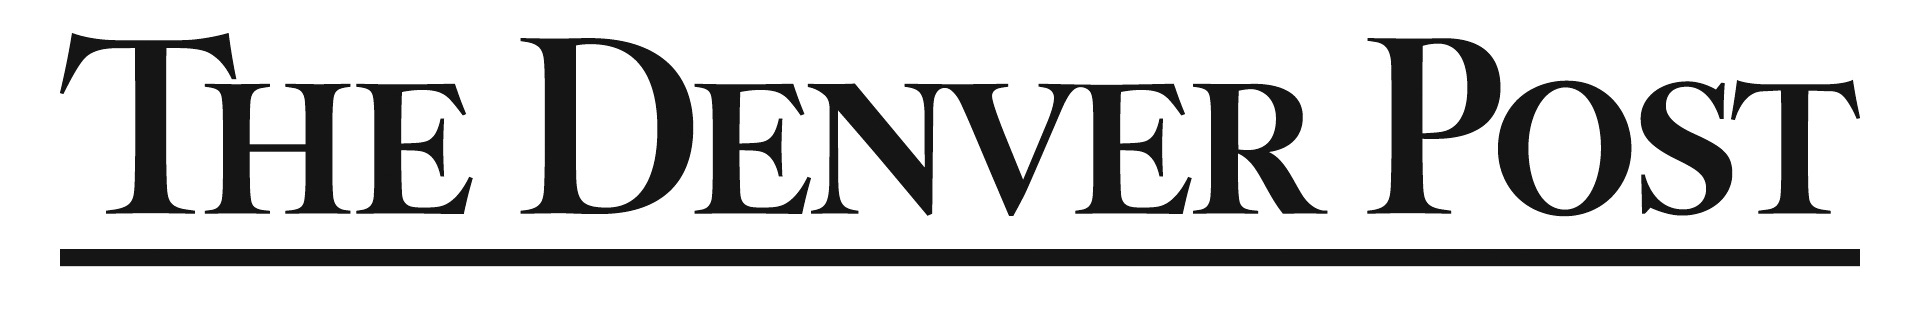 Kwippit App in the Media - The Denver Post_logo.jpg